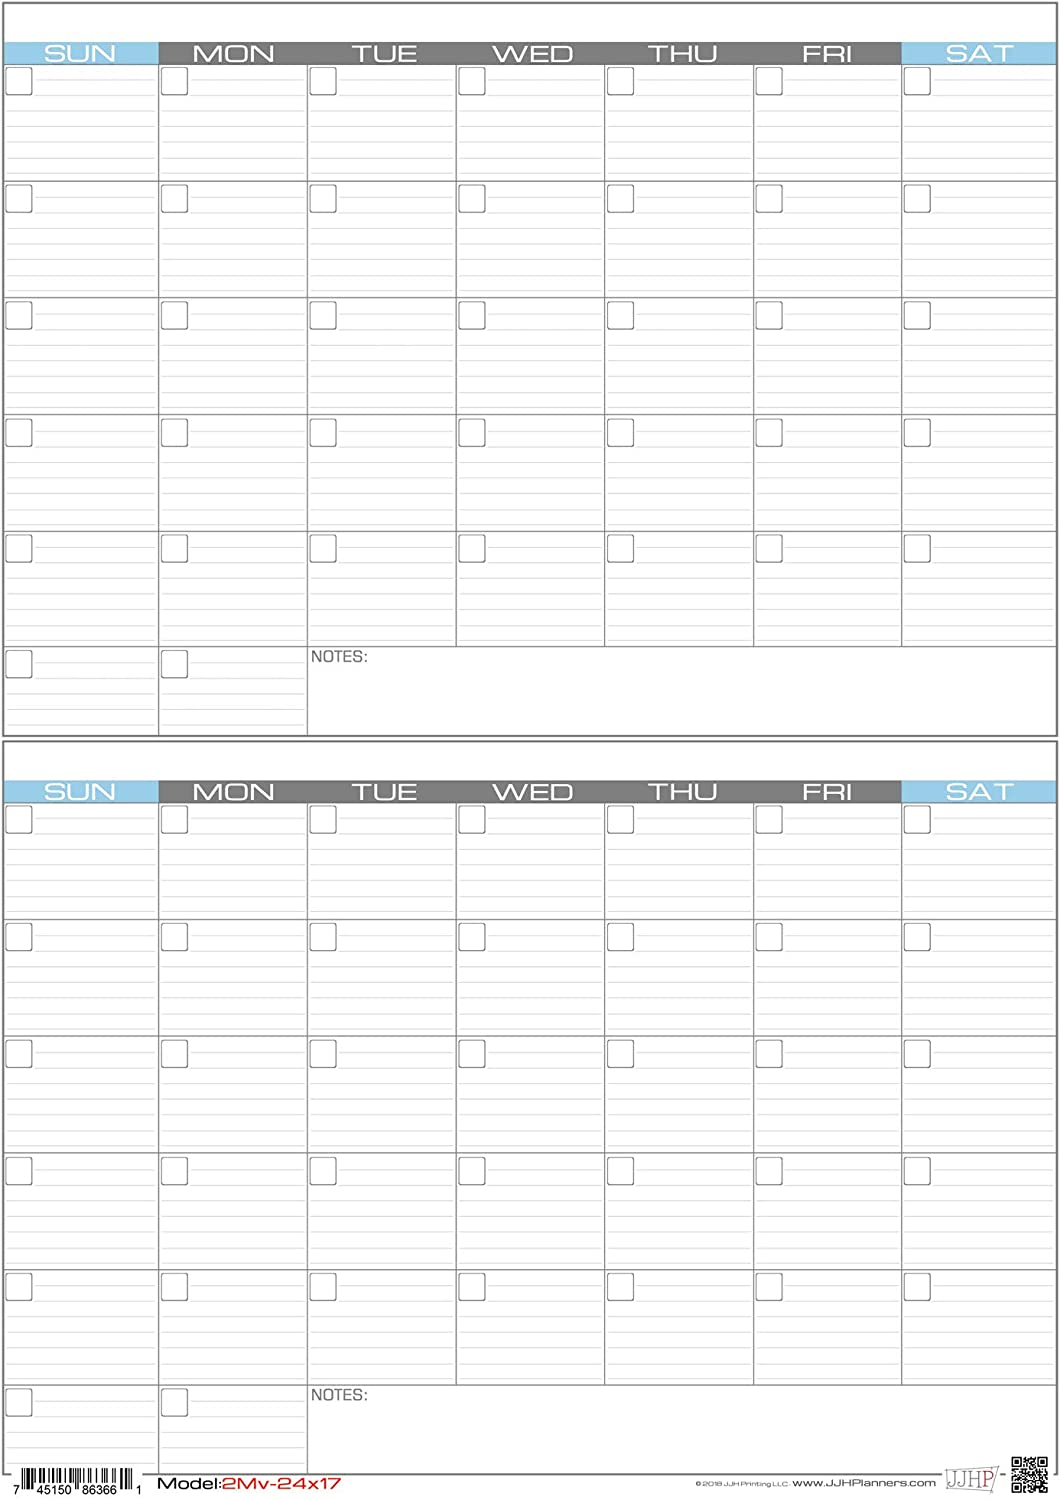 "JJH Planners - Laminated Blank - 24"" x 17"" - Medium - Erasable 2 Month Vertical Wall Planner (2Mv-24x17)"